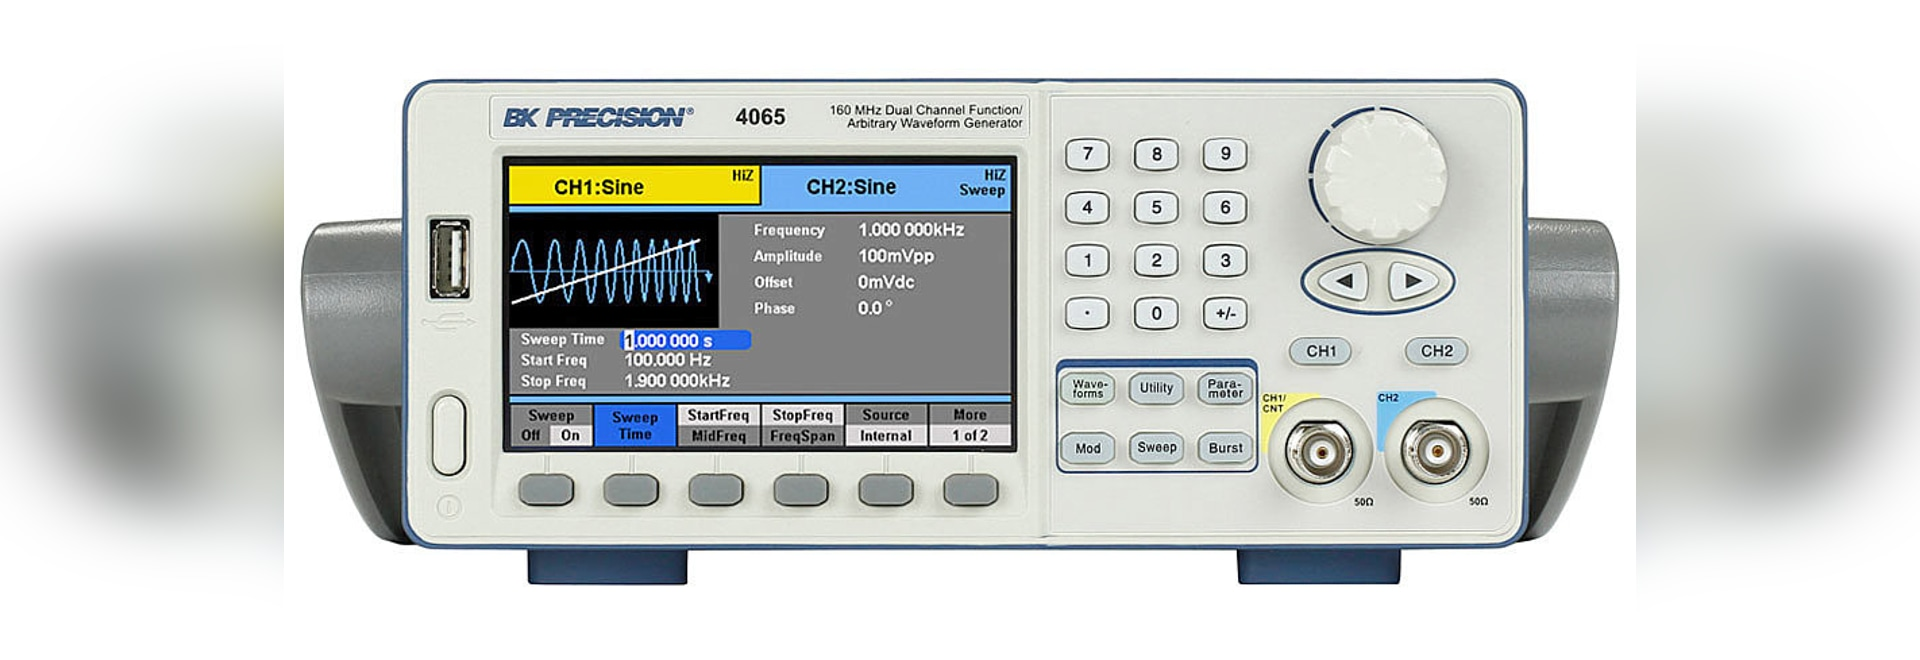 Bk Precision Debuts New Family Of Dual Channel Function Arbitrary Generators Waveform